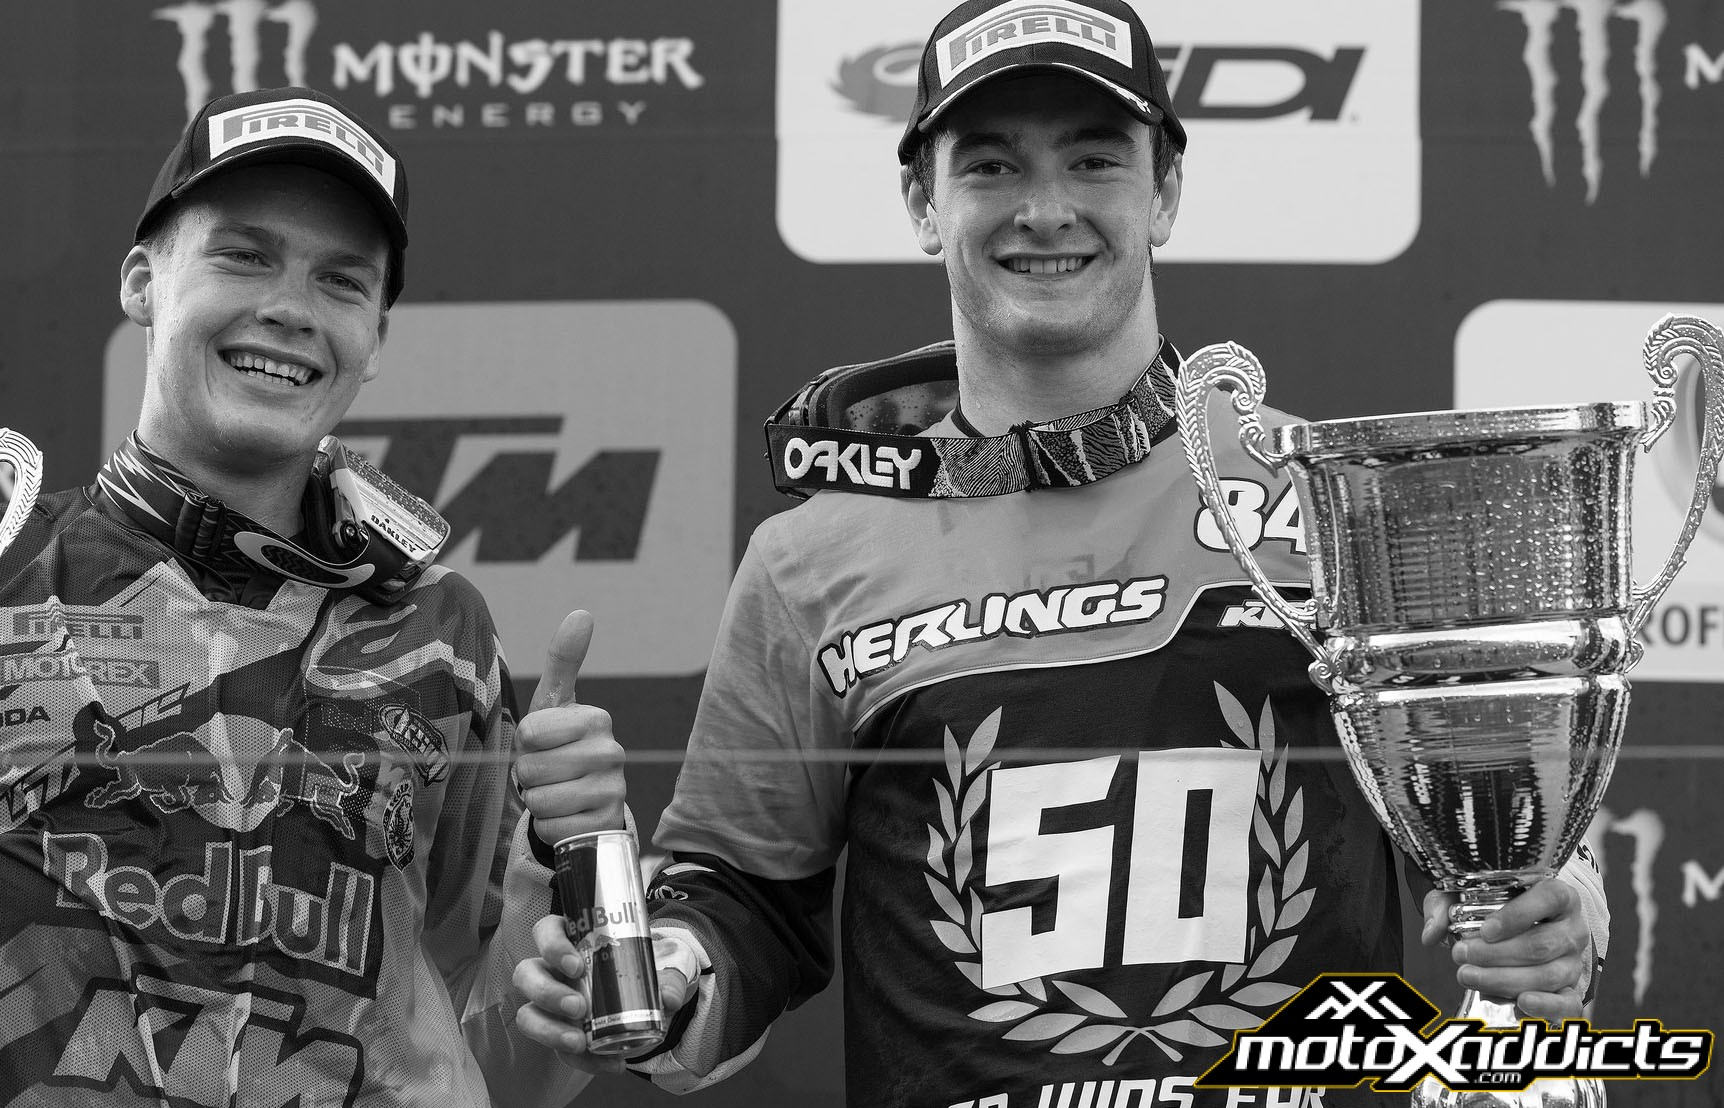 Jeffrey (right) and Pauls Jonass (left) gave KTM a 1-2 finish at Valkenswaard.